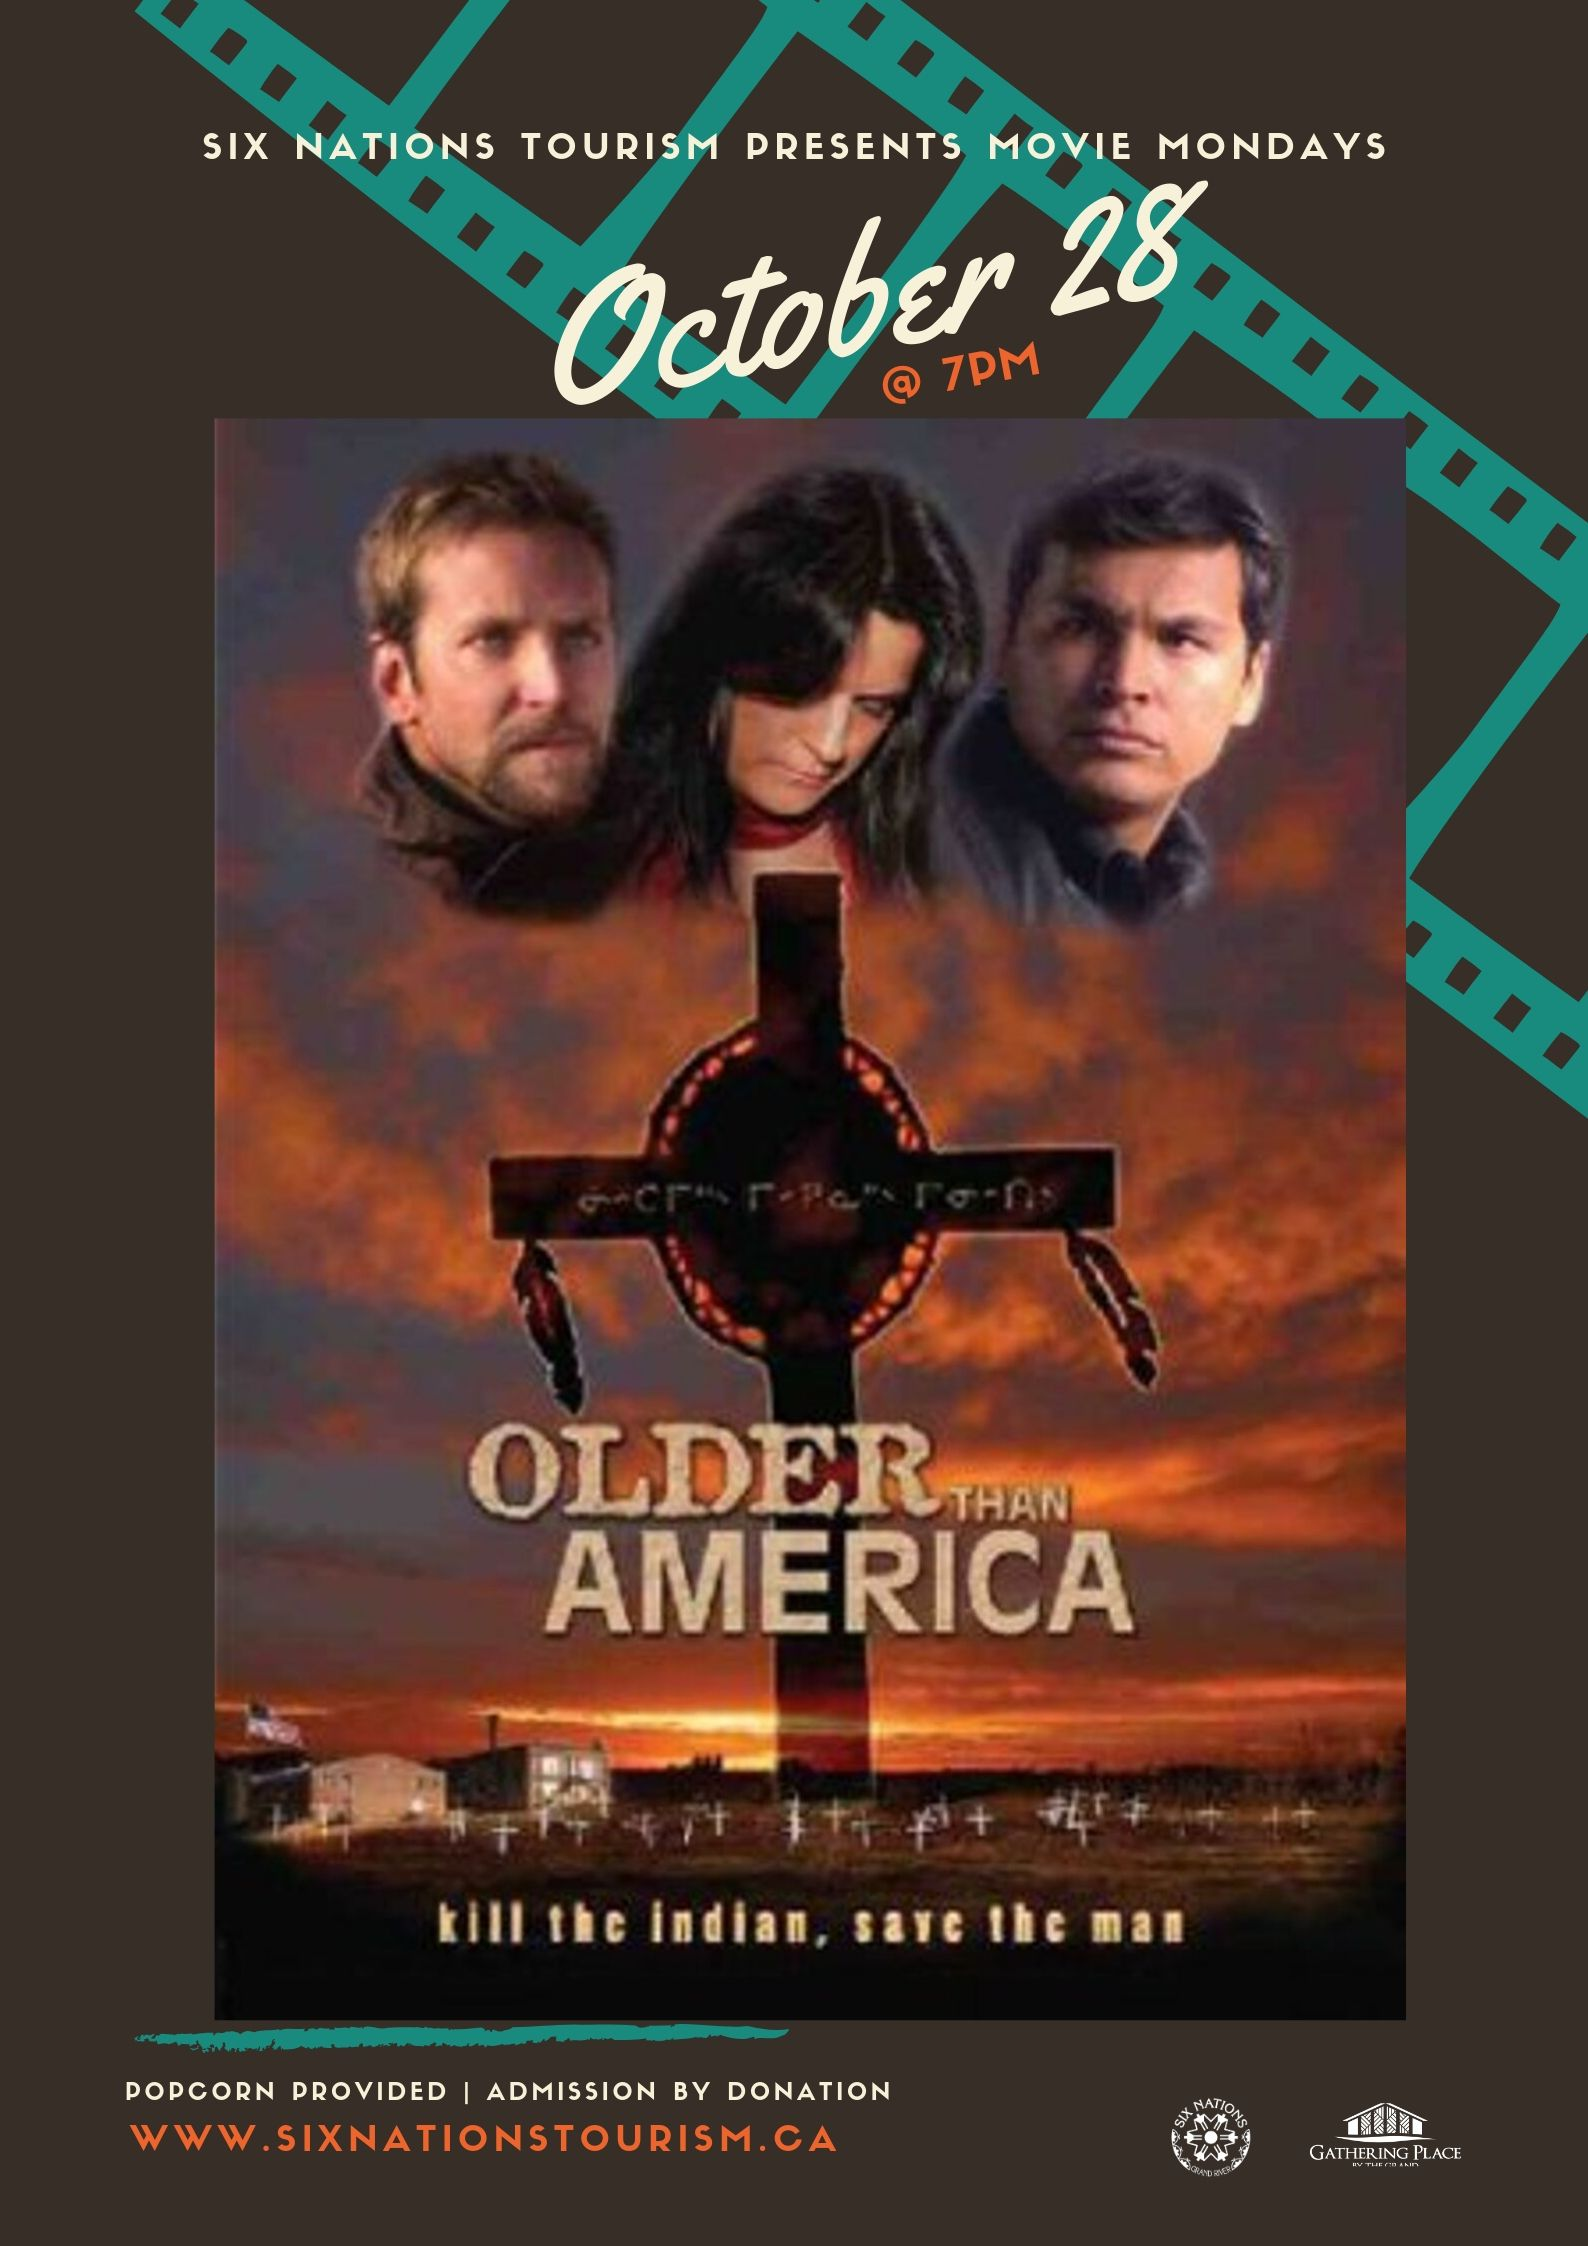 Six Nations Tourism Presents Movie Monday: Older Than America Poster